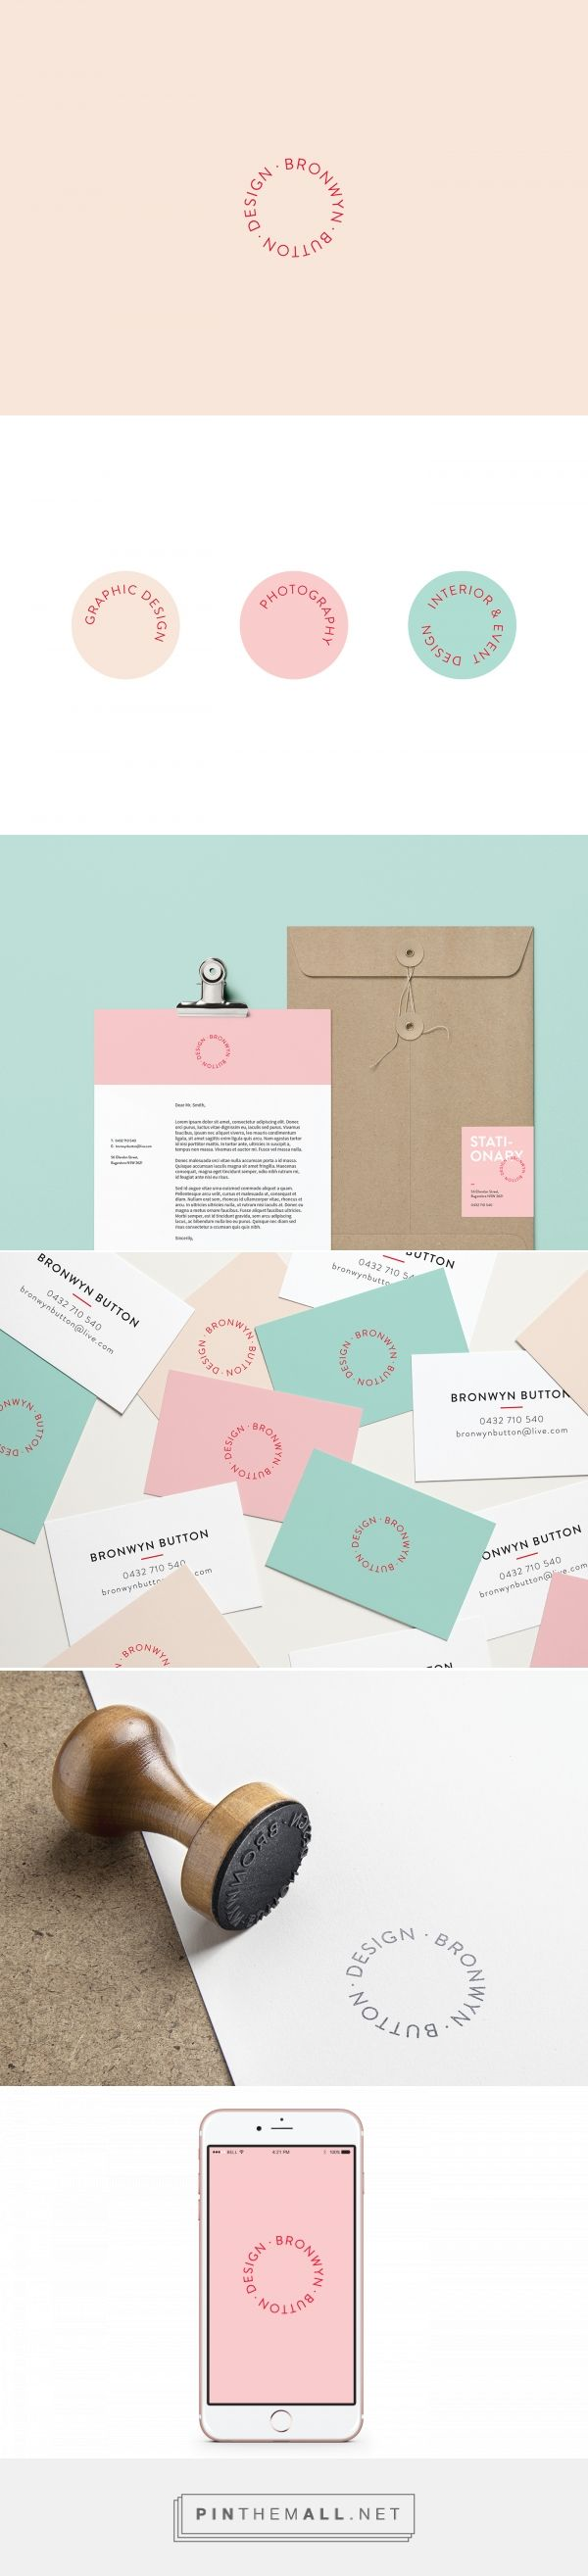 Bronwyn Button Personal Branding | Fivestar Branding Agency – Design and Branding Agency & Curated Inspiration Gallery